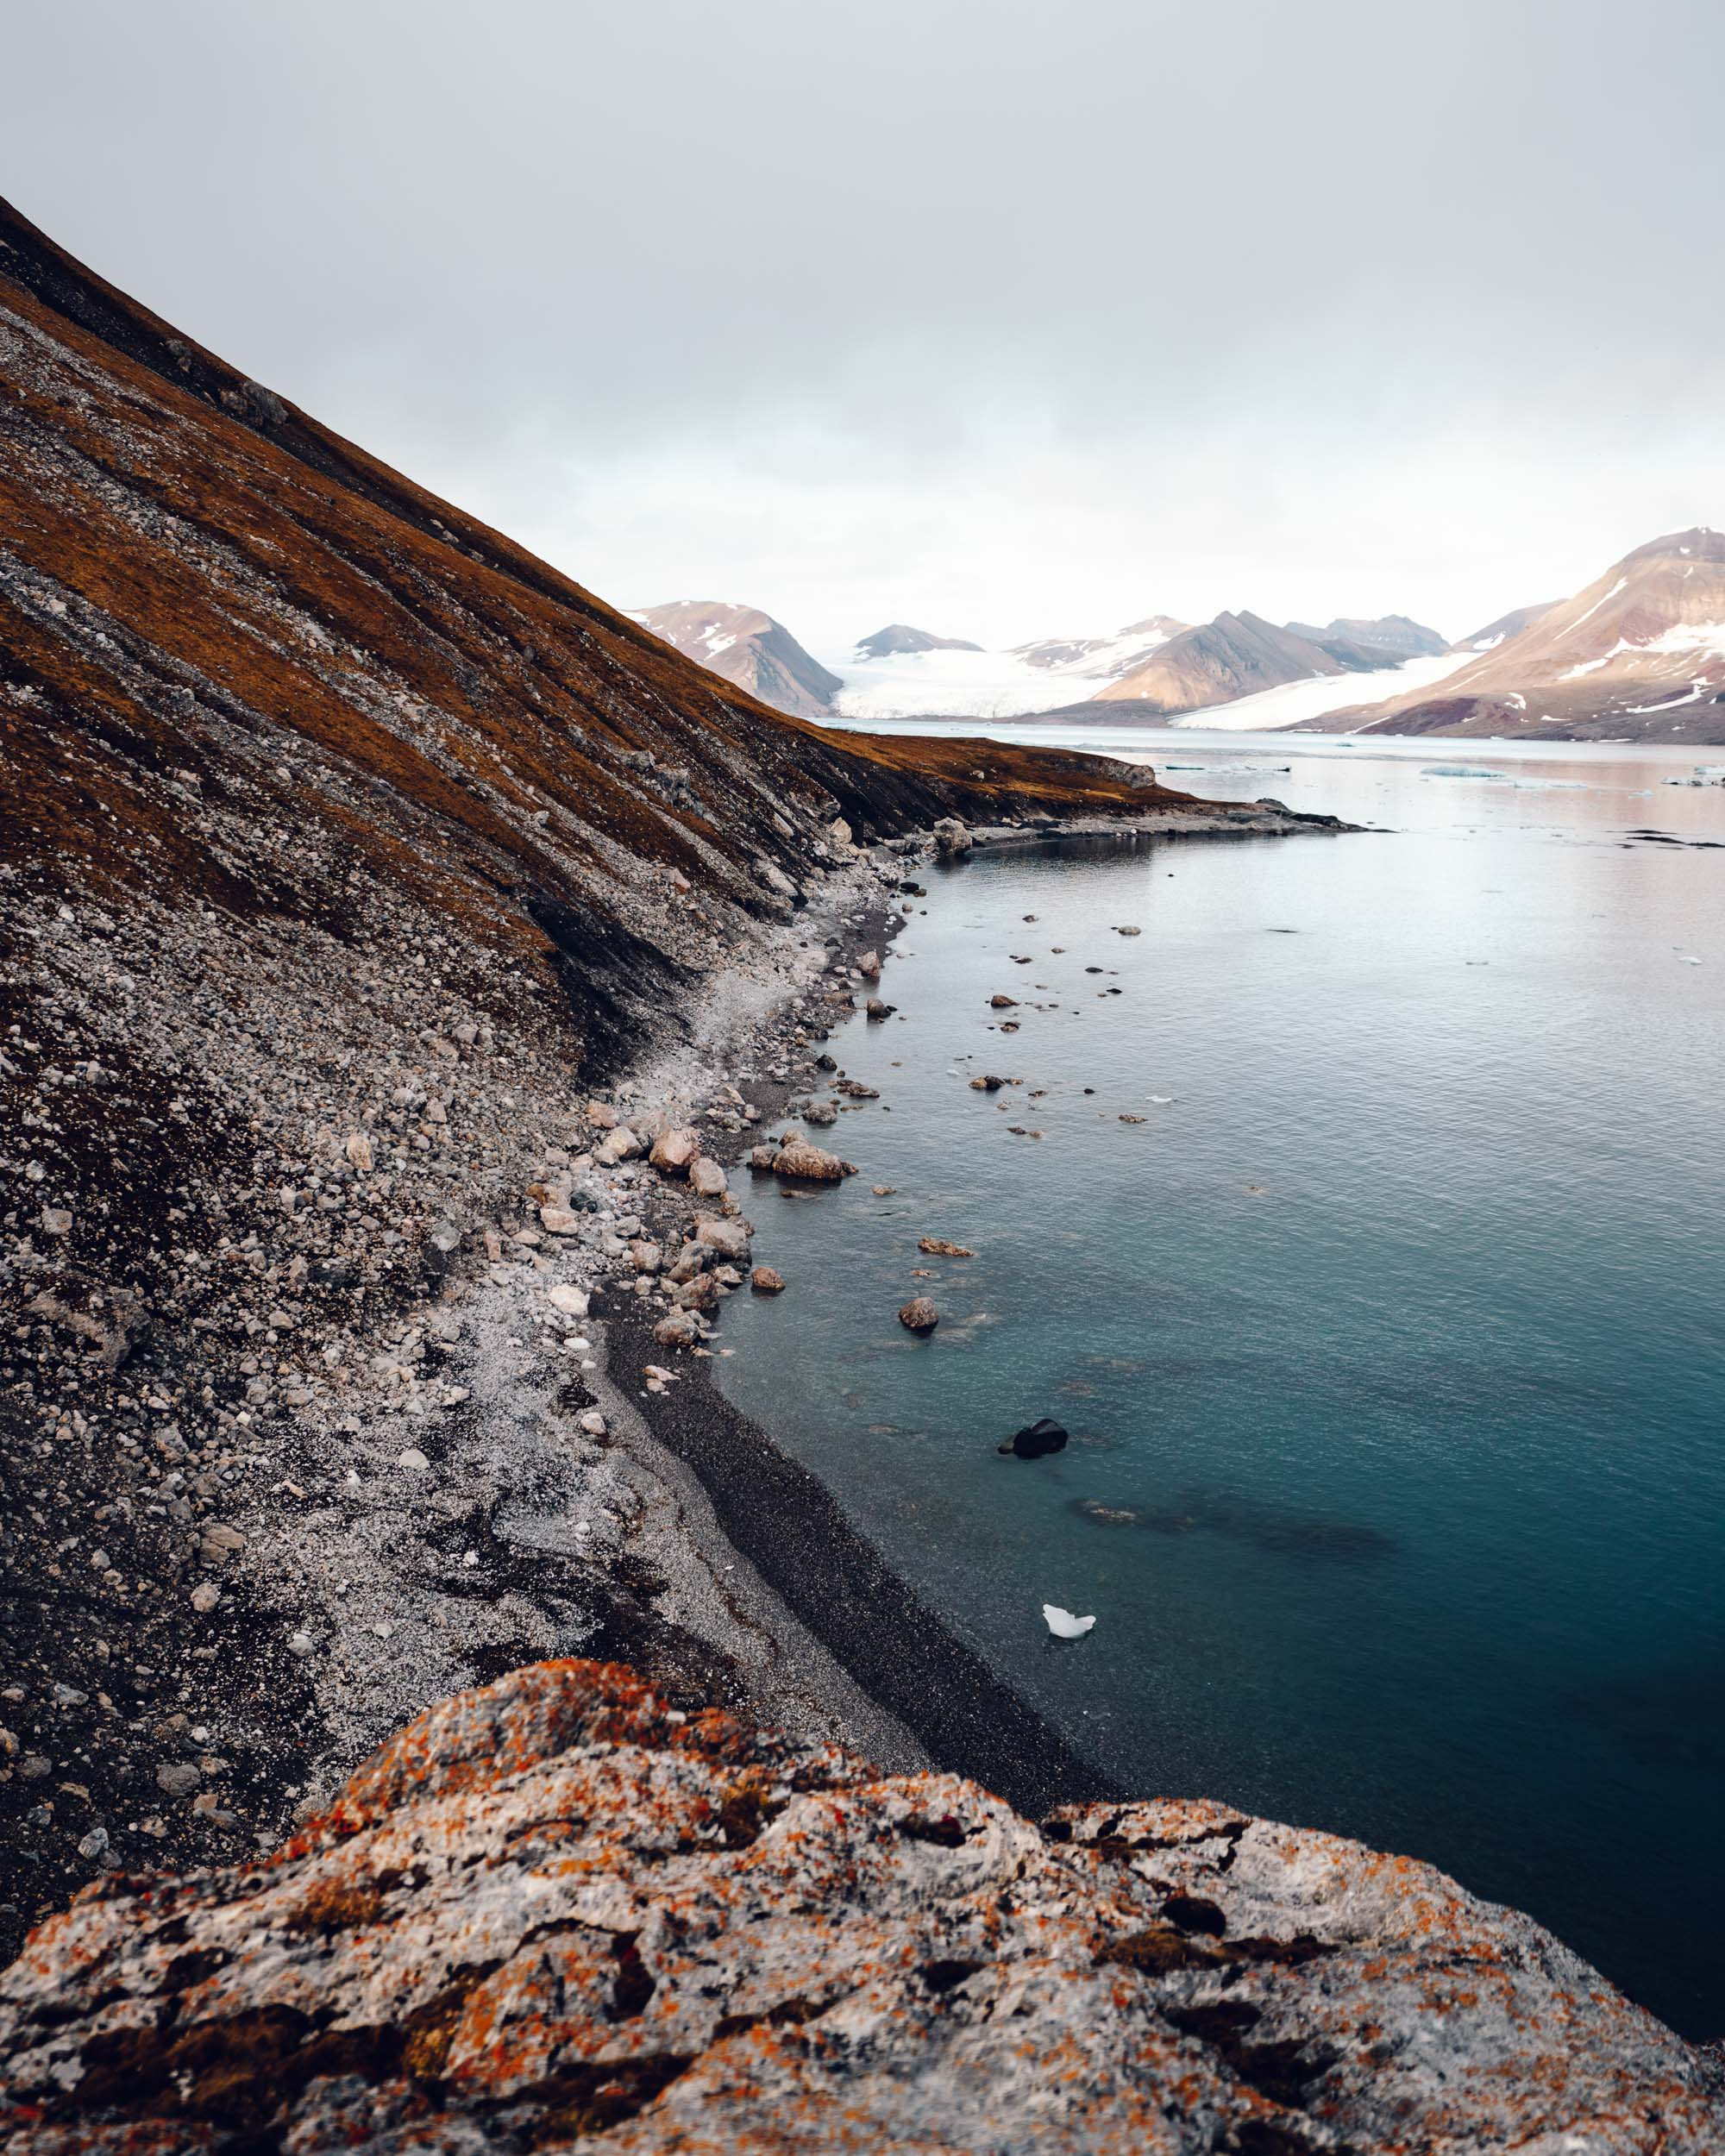 Beaches and glaciers in Svalbard, Norway